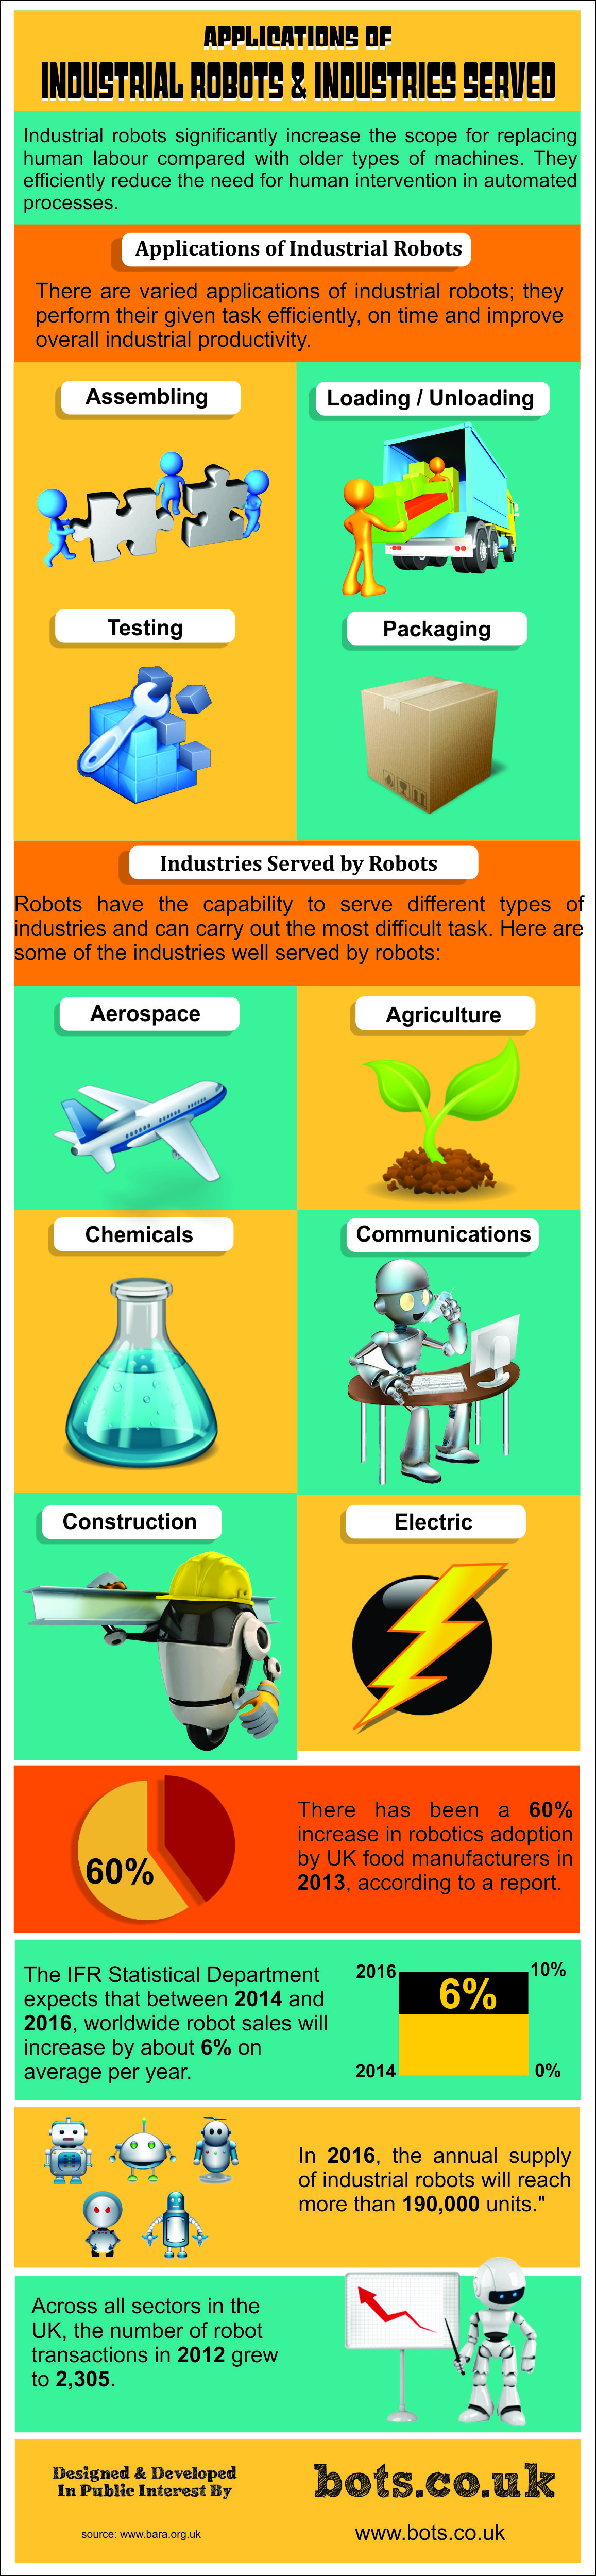 Applications of Industrial Robots & Industries Served   Visual ly